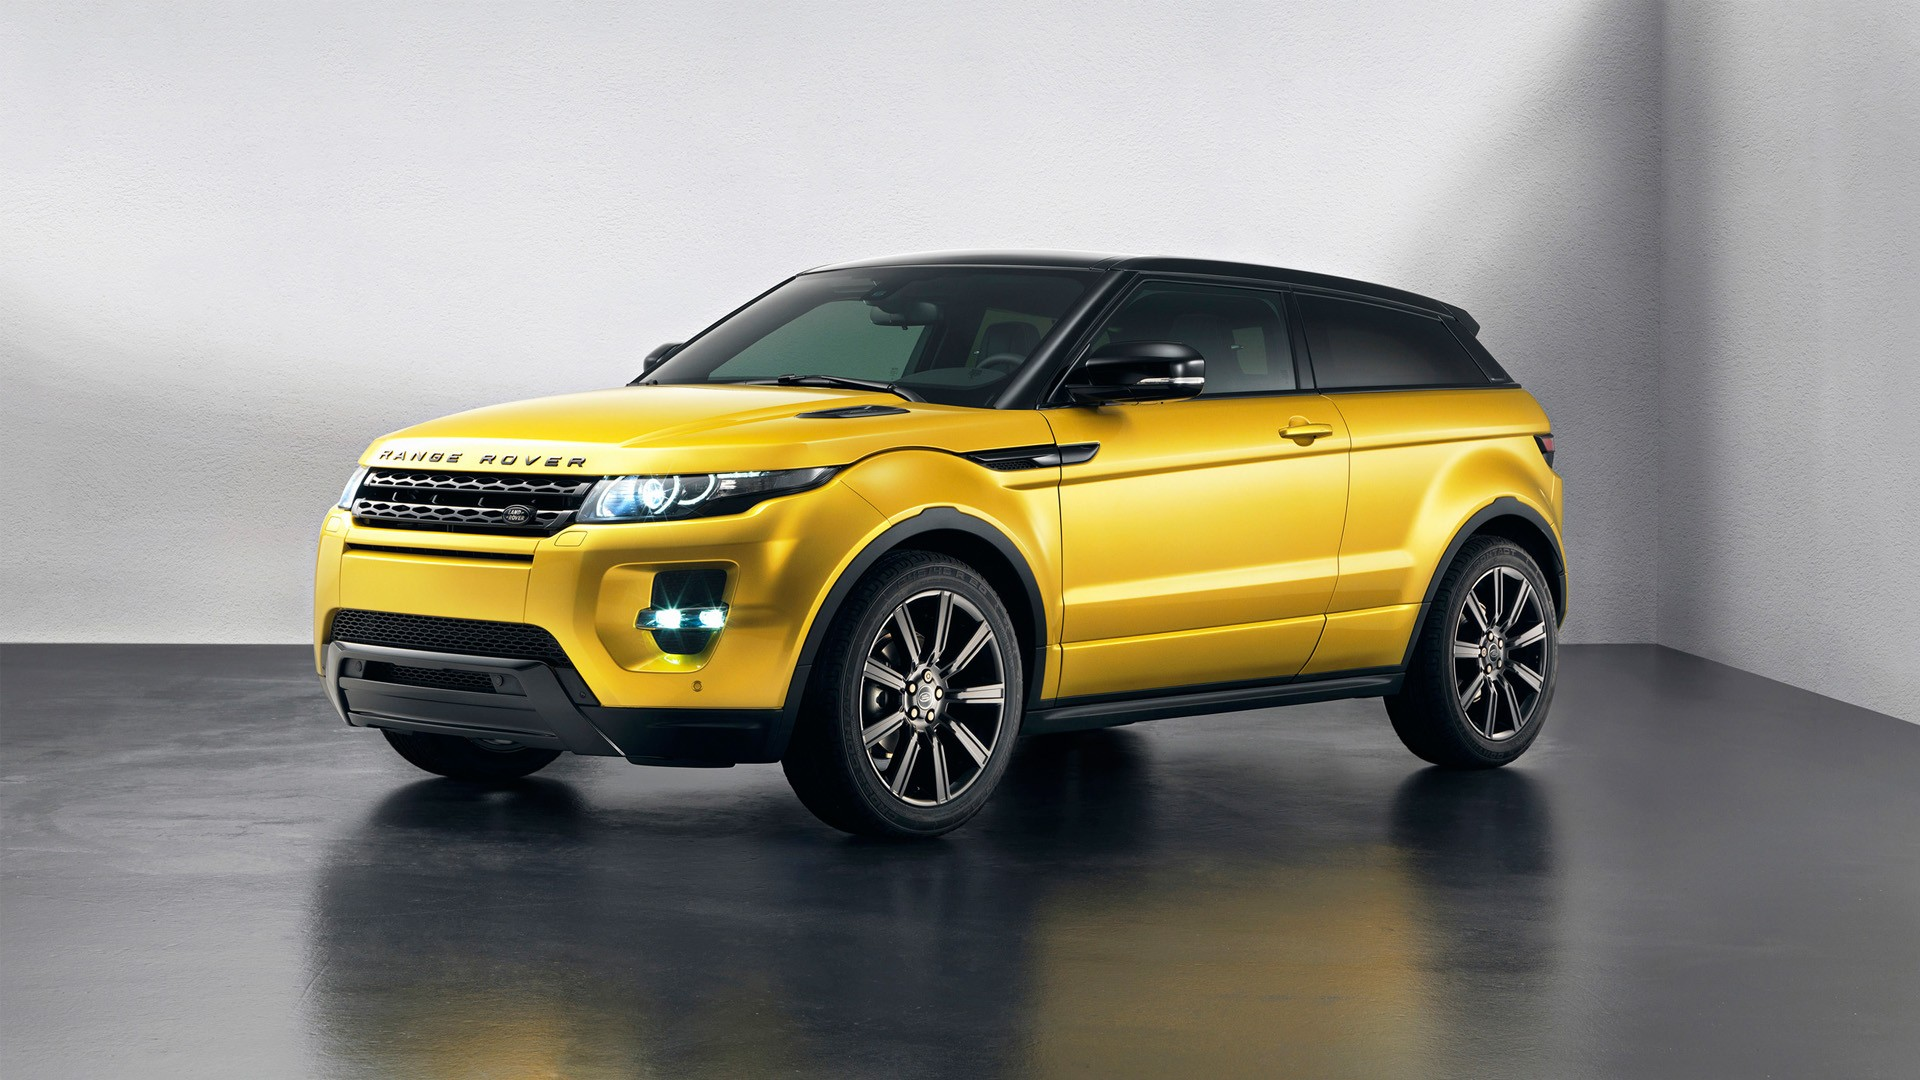 Dynamic Wallpaper Iphone X 2013 Land Rover Range Rover Evoque Special Edition